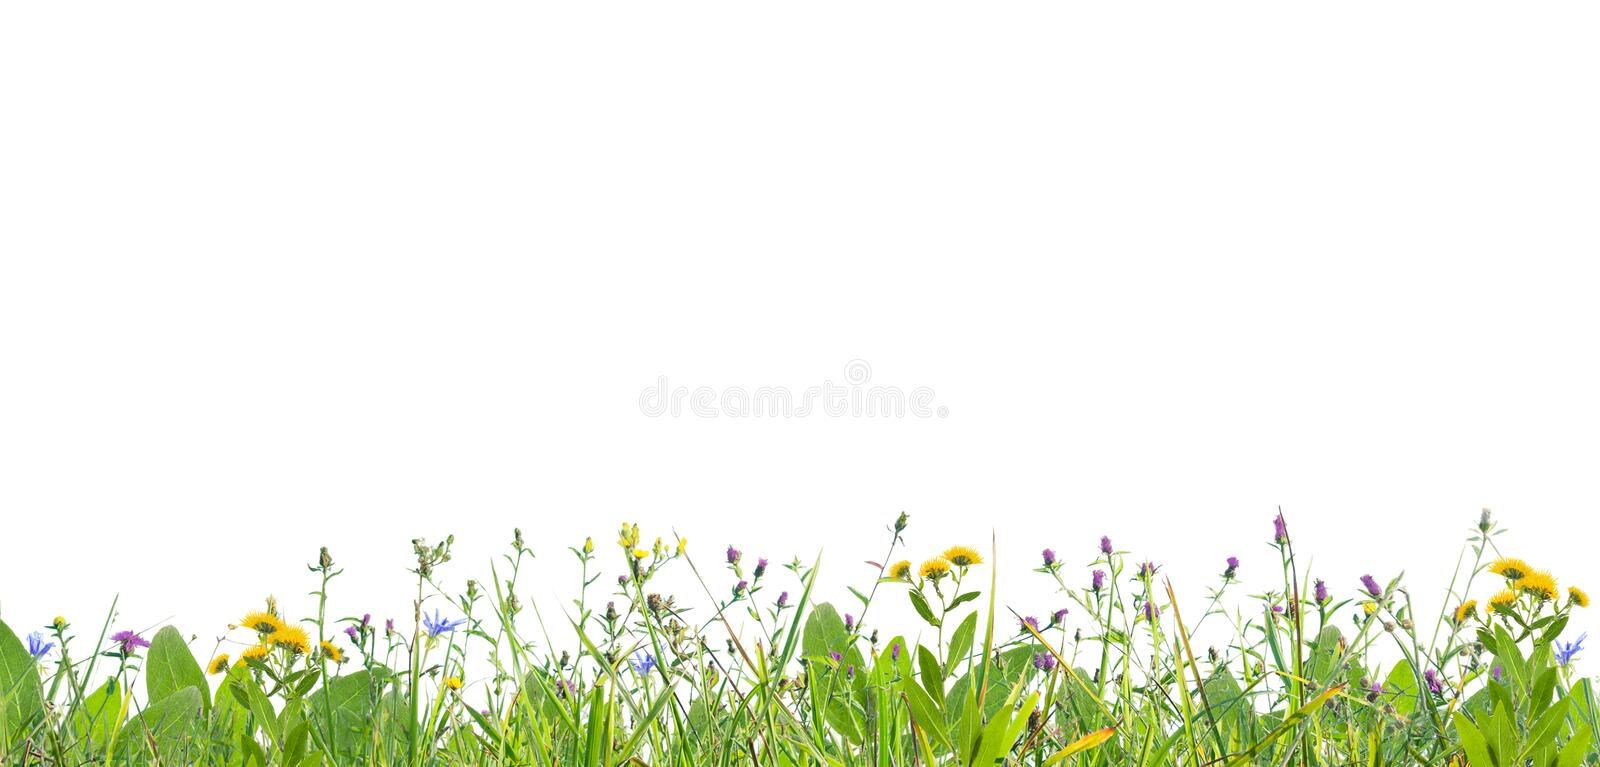 Herbe et fleurs sauvages images stock